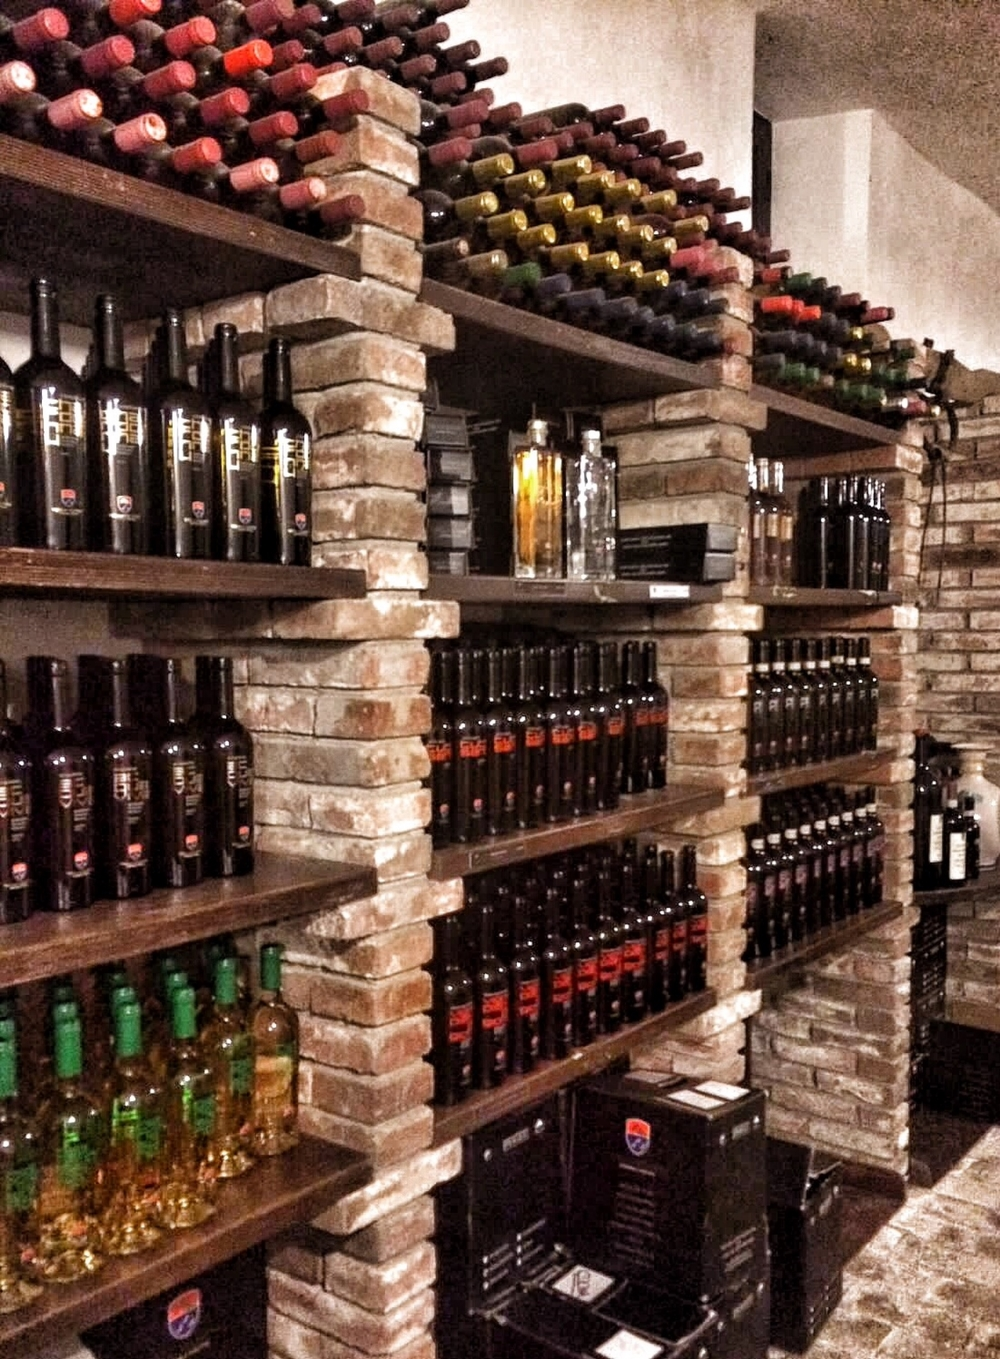 The various types of vine: Sangiovese, Malvasia nera, Alicante, Trebbiano, Chardonnay, Verdello - produced by the Vineyard can be tasted in the wine bar, which is located inside the old wine cellar of the country hotel (Villa Acquaviva, Montemerano, Maremma, Tuscany)